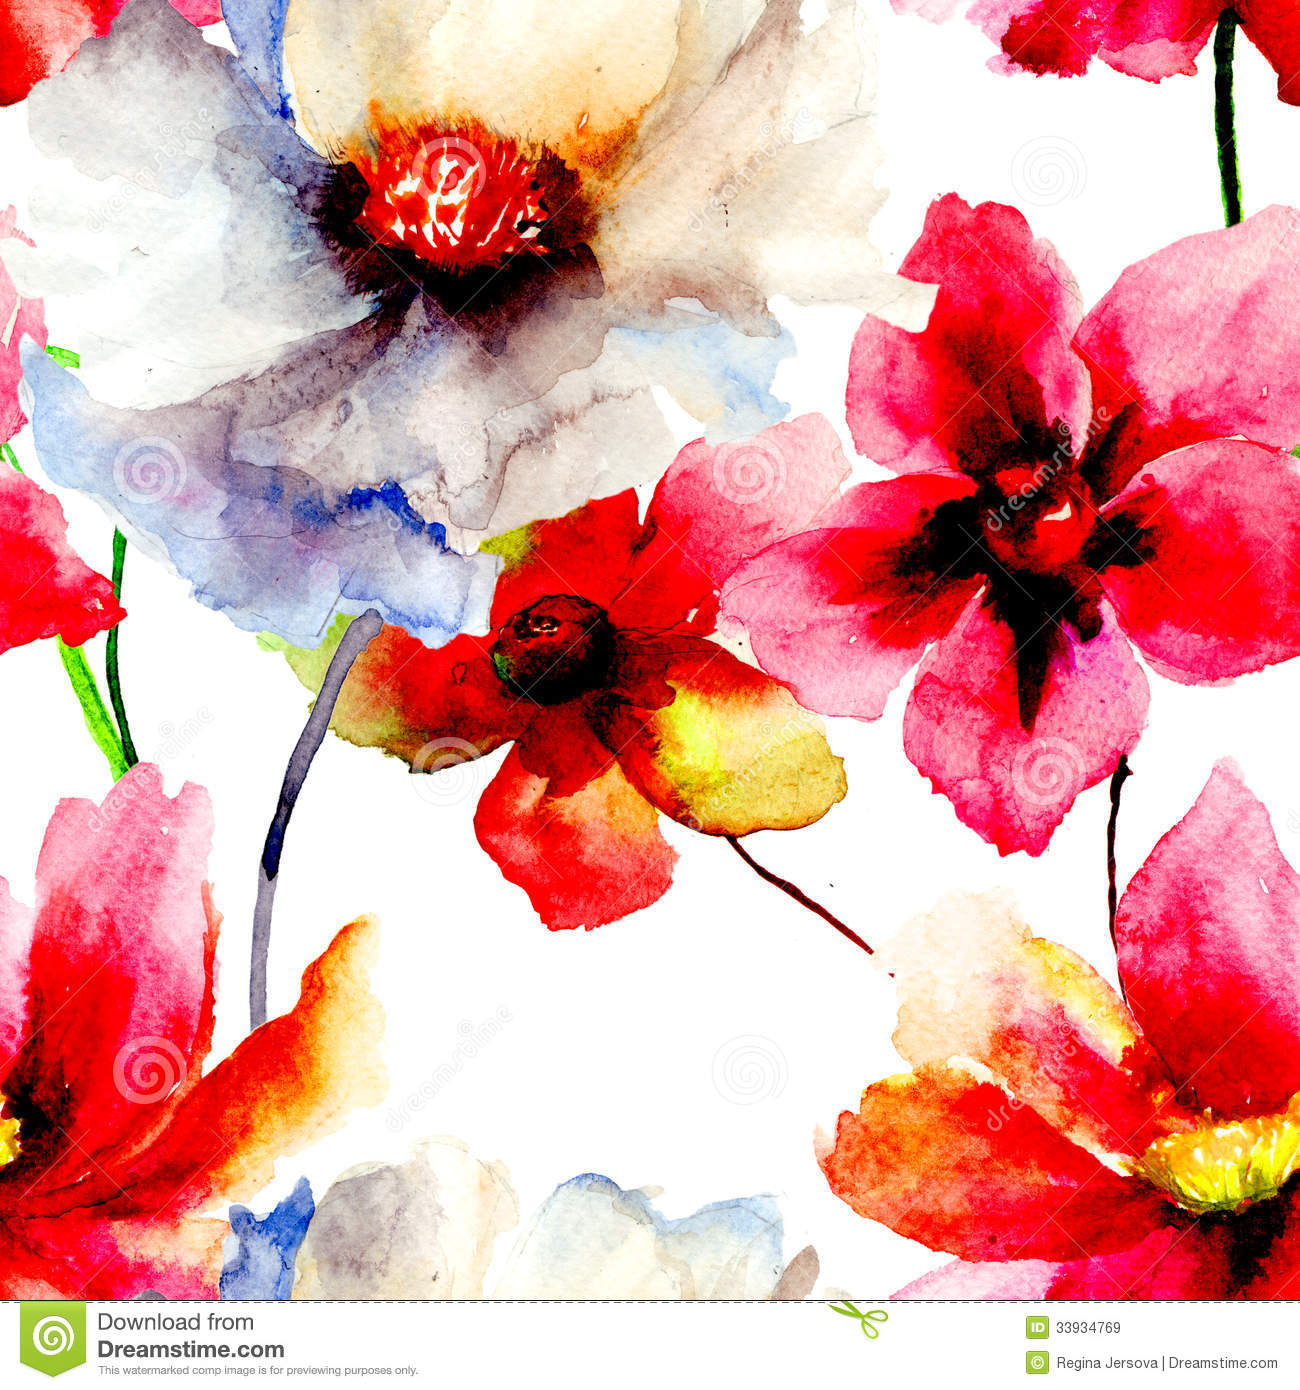 Free Download Watercolor Flower Wallpaper Seamless Wallpaper With